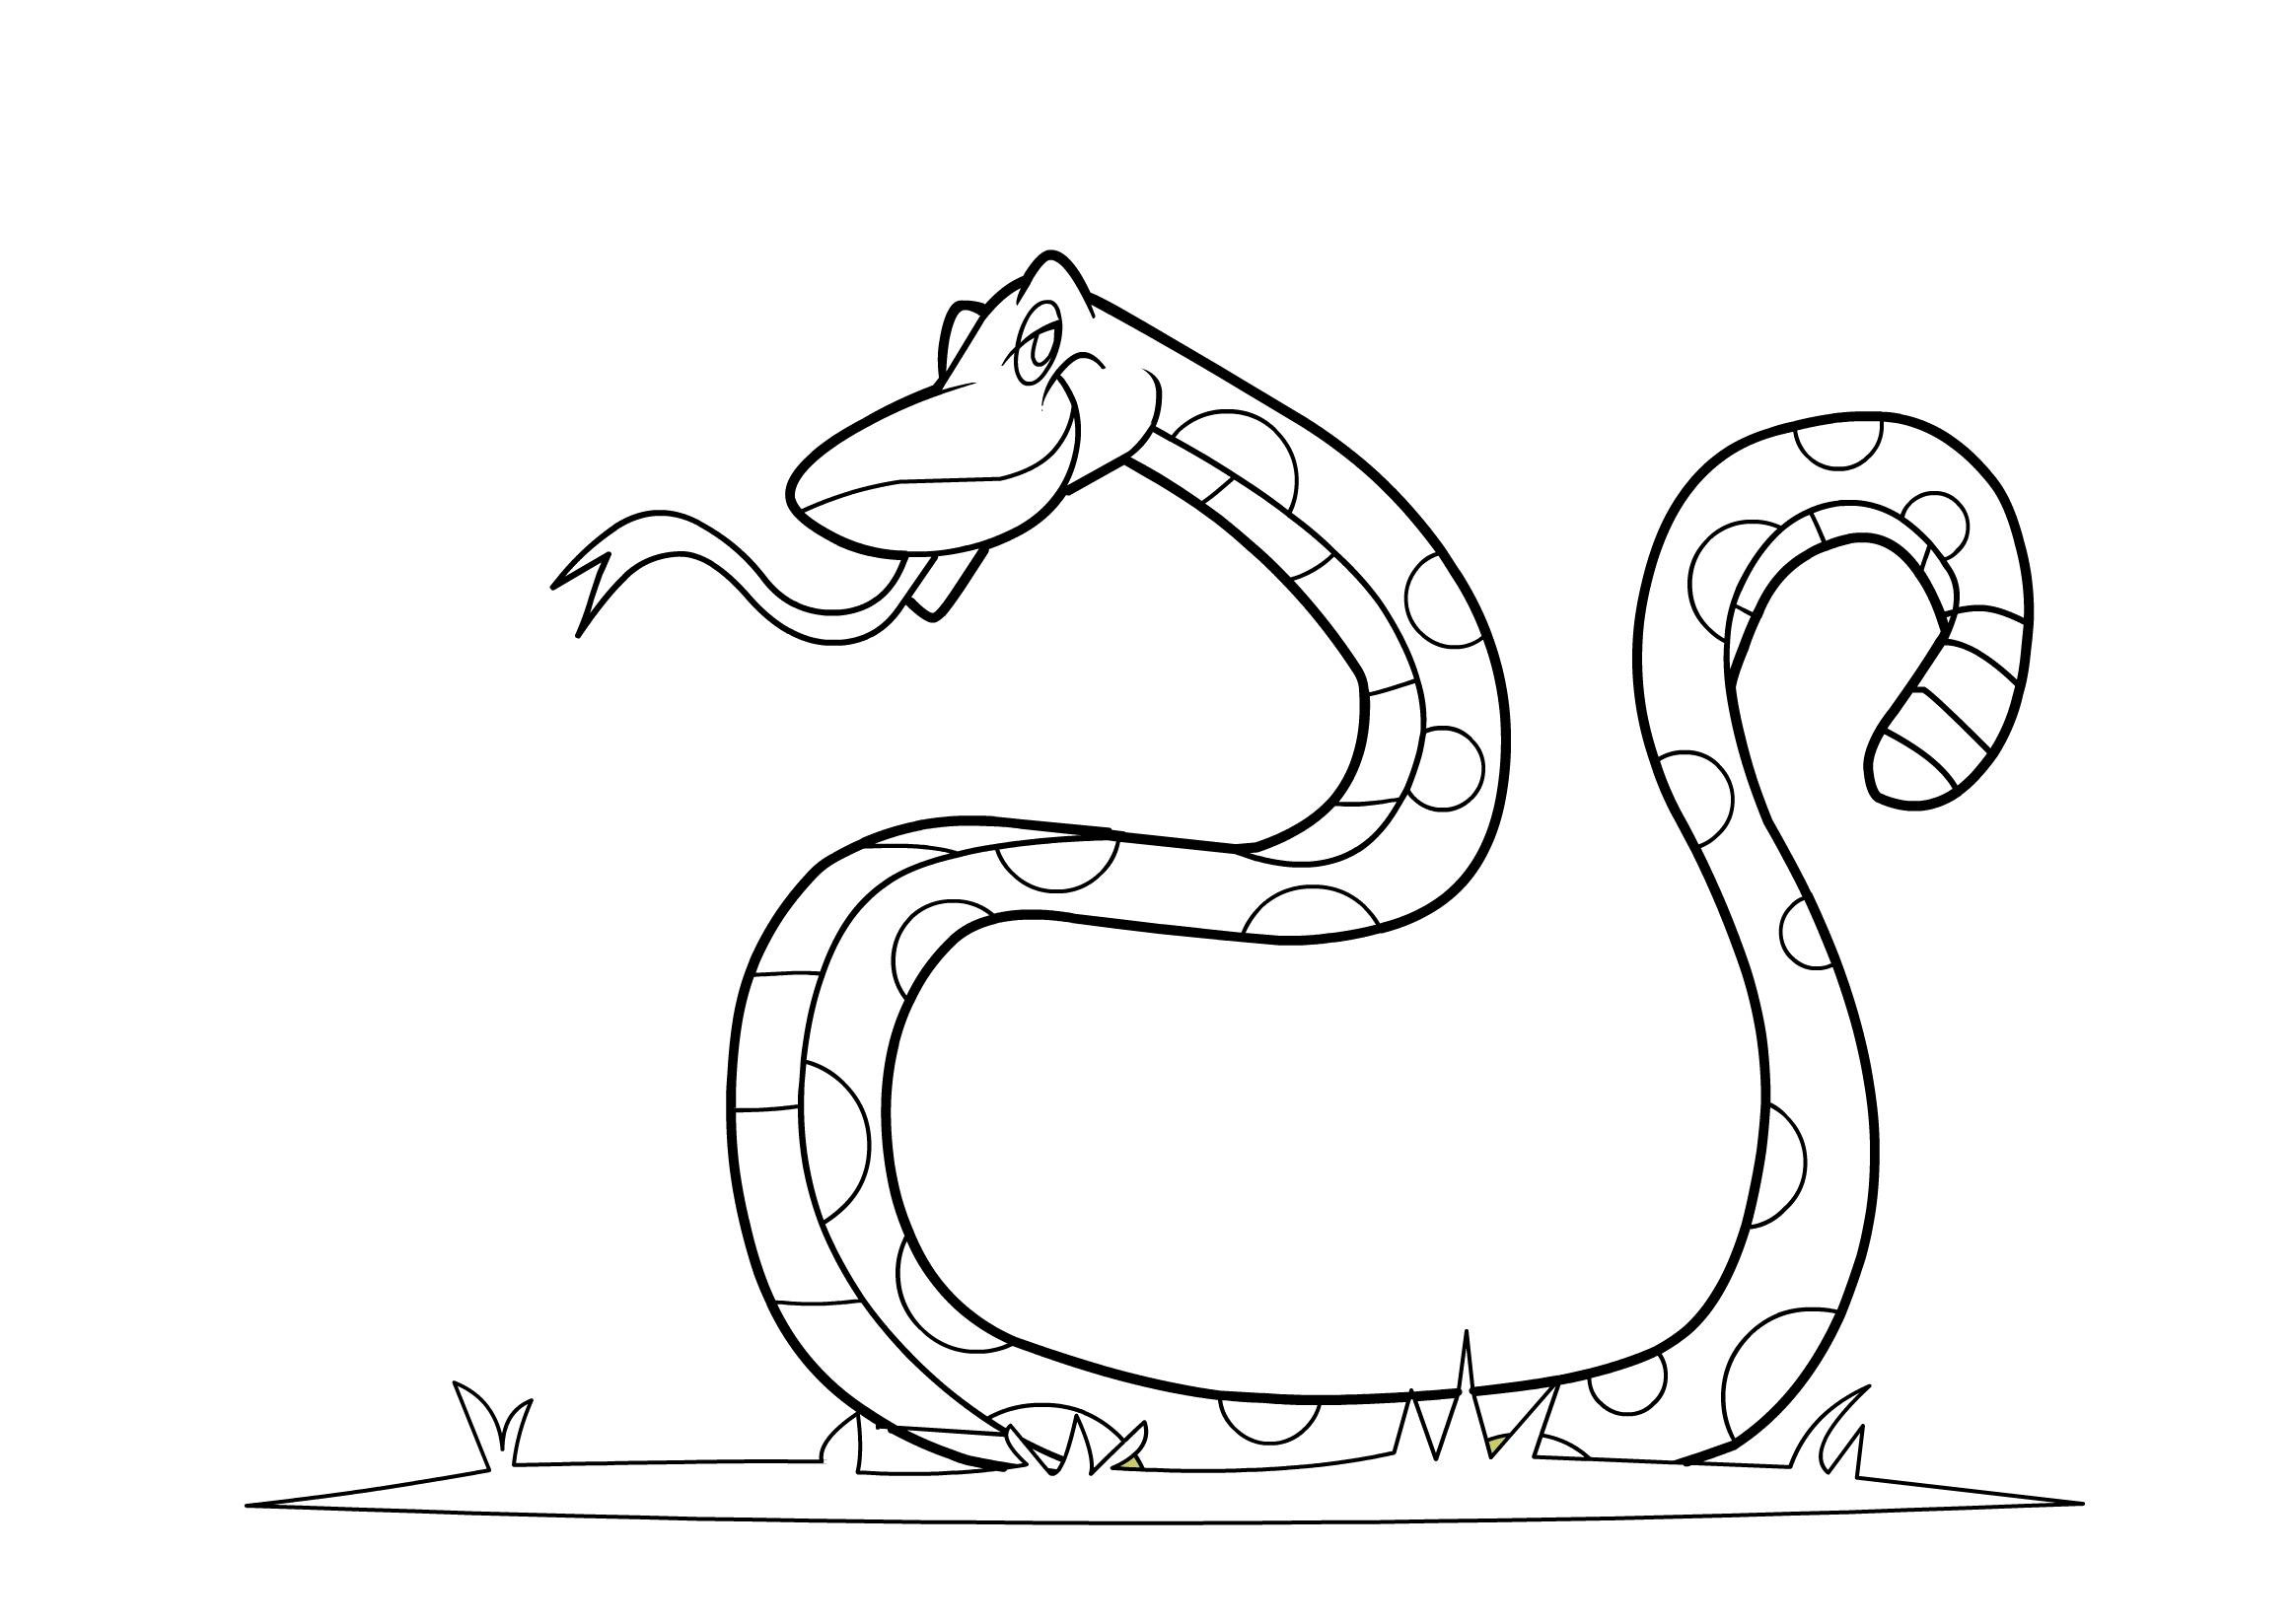 coloring book pages of snakes - photo#15